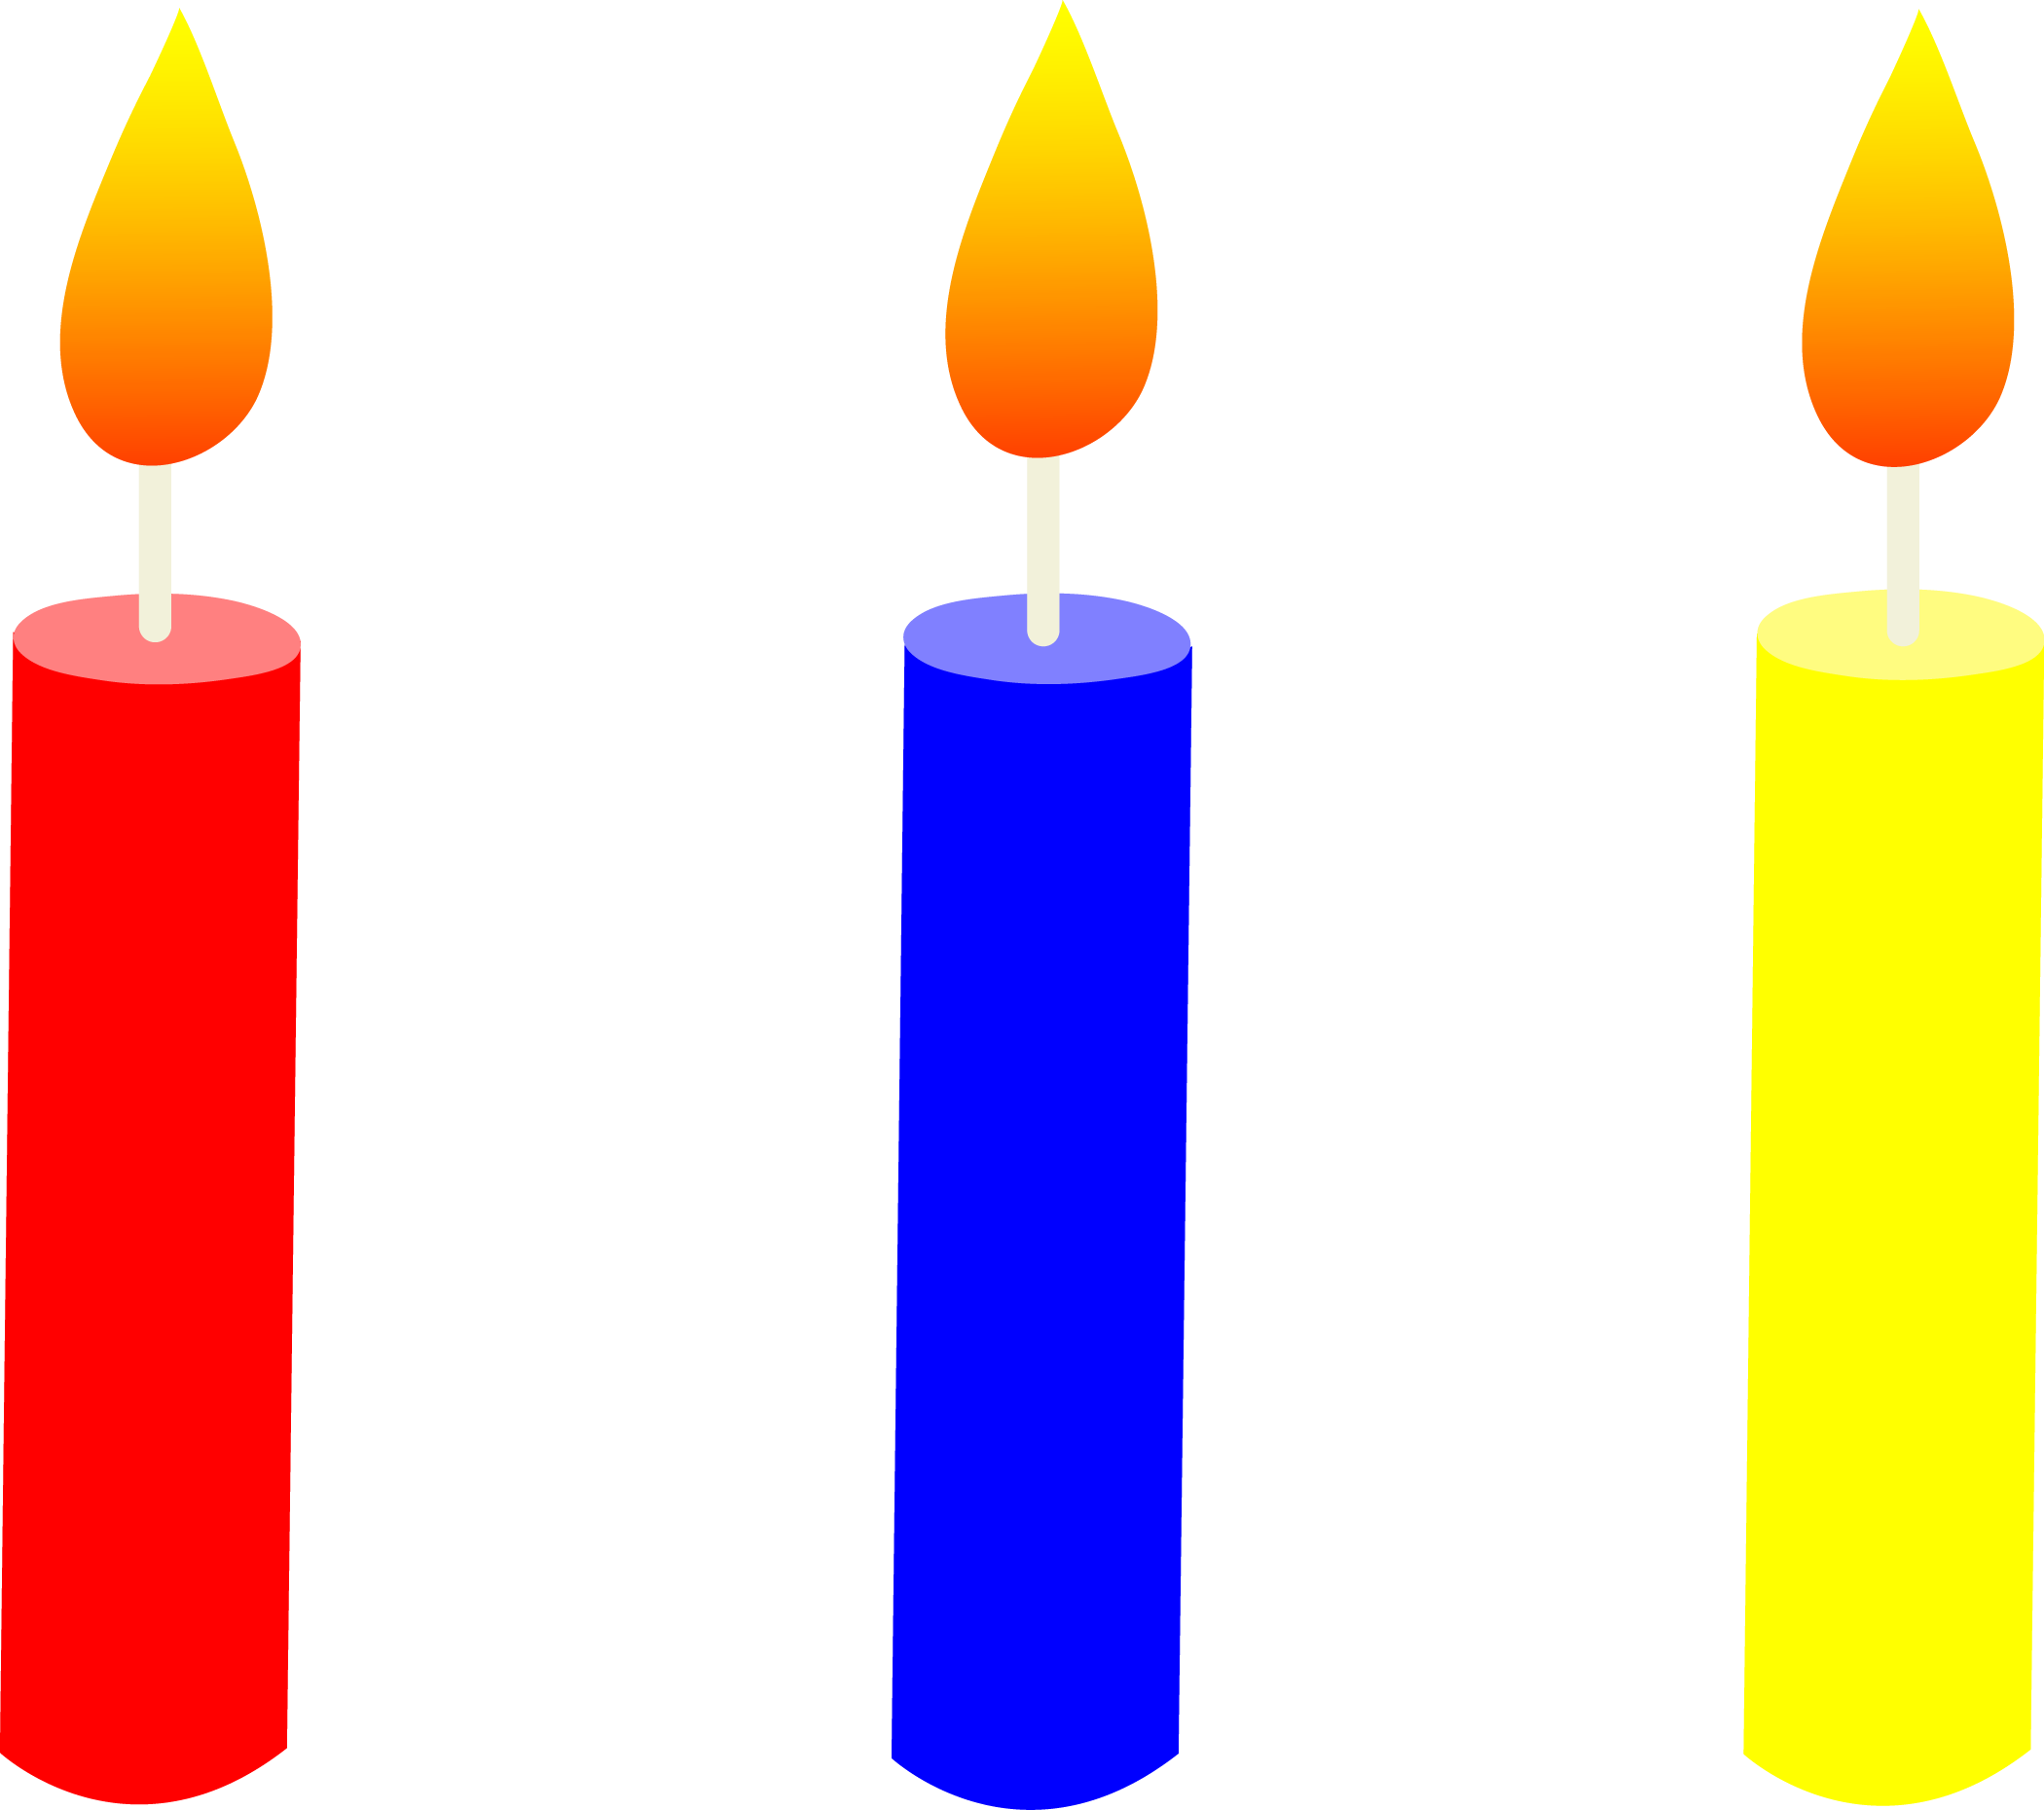 Clip Art Of Birthday Cake With Candles : Three Lit Birthday Cake Candles - Free Clip Art